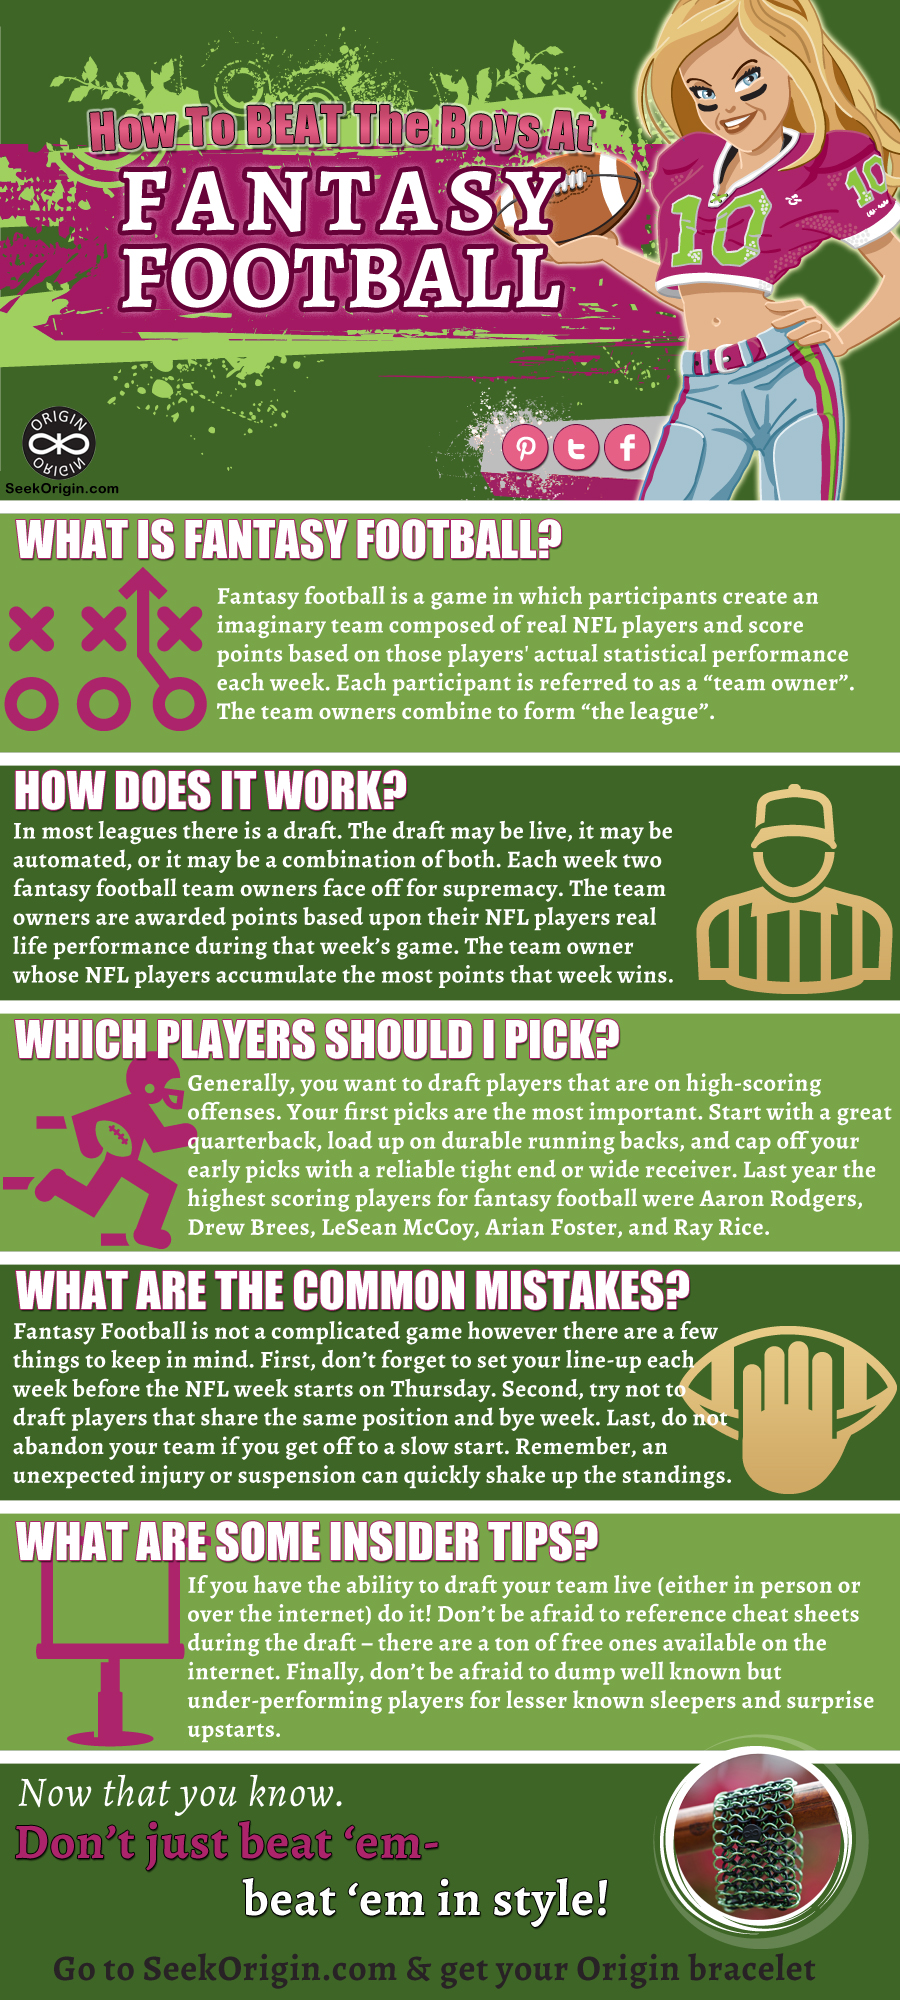 how-to-play-fantasy-football-the-girls-guide_503f8d6a2be3a